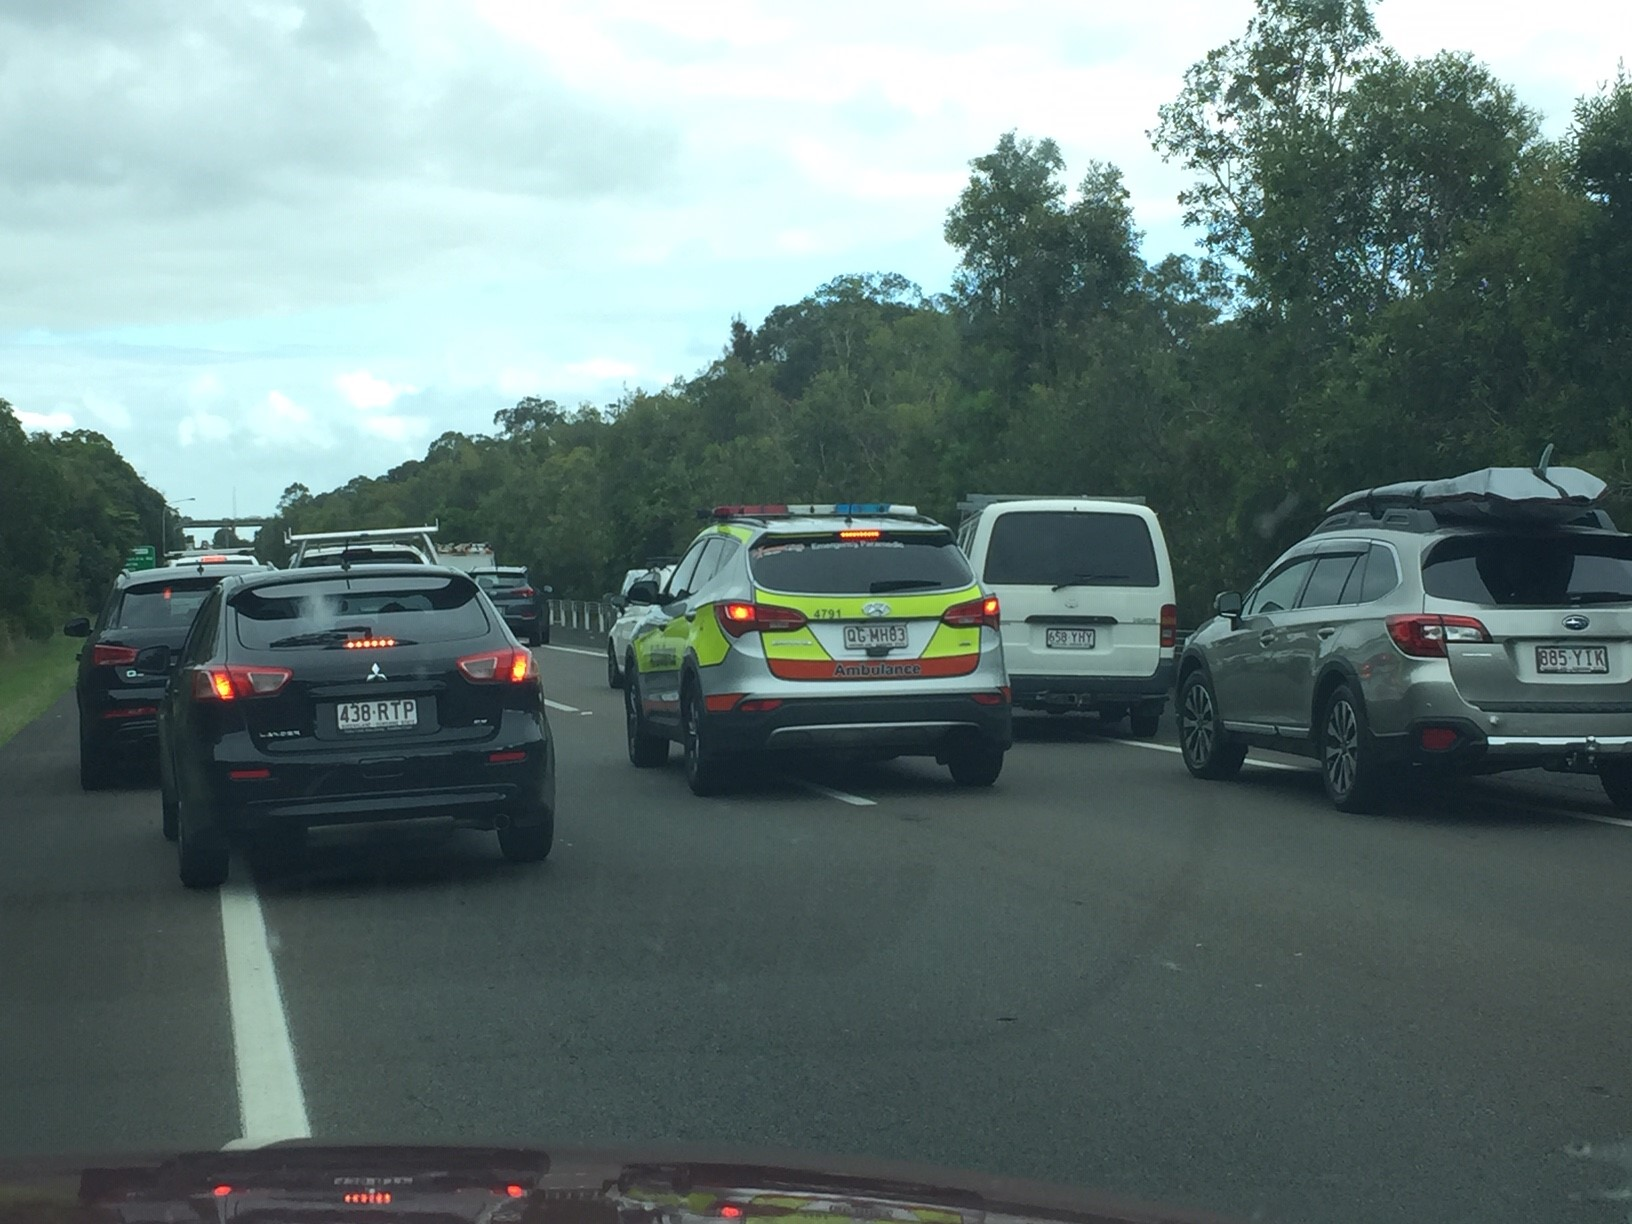 Drivers on the northbound lanes experienced heavy delays.